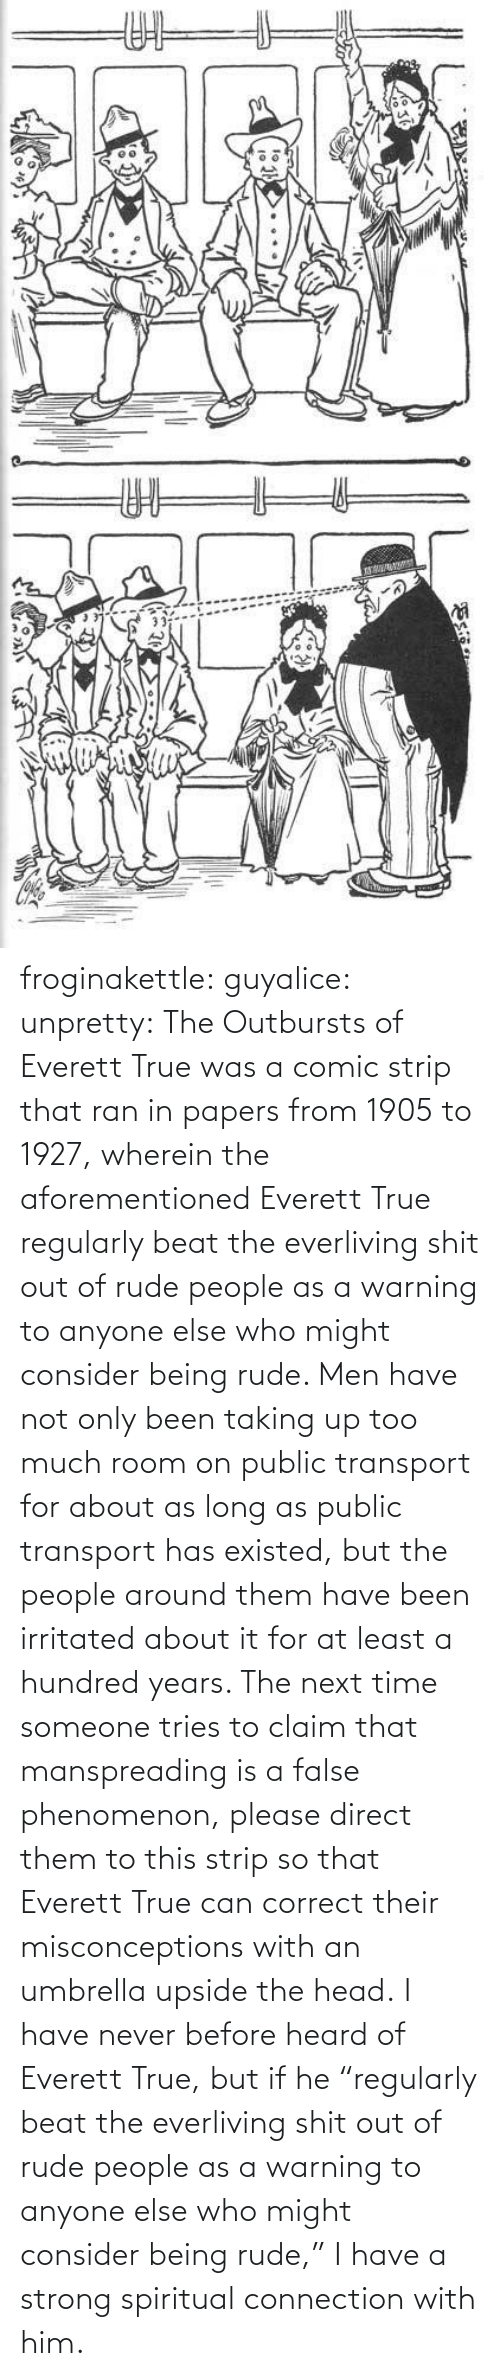 "Tries: ఇ  క froginakettle:  guyalice:  unpretty:  The Outbursts of Everett True was a comic strip that ran in papers from 1905 to 1927, wherein the aforementioned Everett True regularly beat the everliving shit out of rude people as a warning to anyone else who might consider being rude. Men have not only been taking up too much room on public transport for about as long as public transport has existed, but the people around them have been irritated about it for at least a hundred years. The next time someone tries to claim that manspreading is a false phenomenon, please direct them to this strip so that Everett True can correct their misconceptions with an umbrella upside the head.  I have never before heard of Everett True, but if he ""regularly beat the everliving shit out of rude people as a warning to anyone else who might consider being rude,"" I have a strong spiritual connection with him."